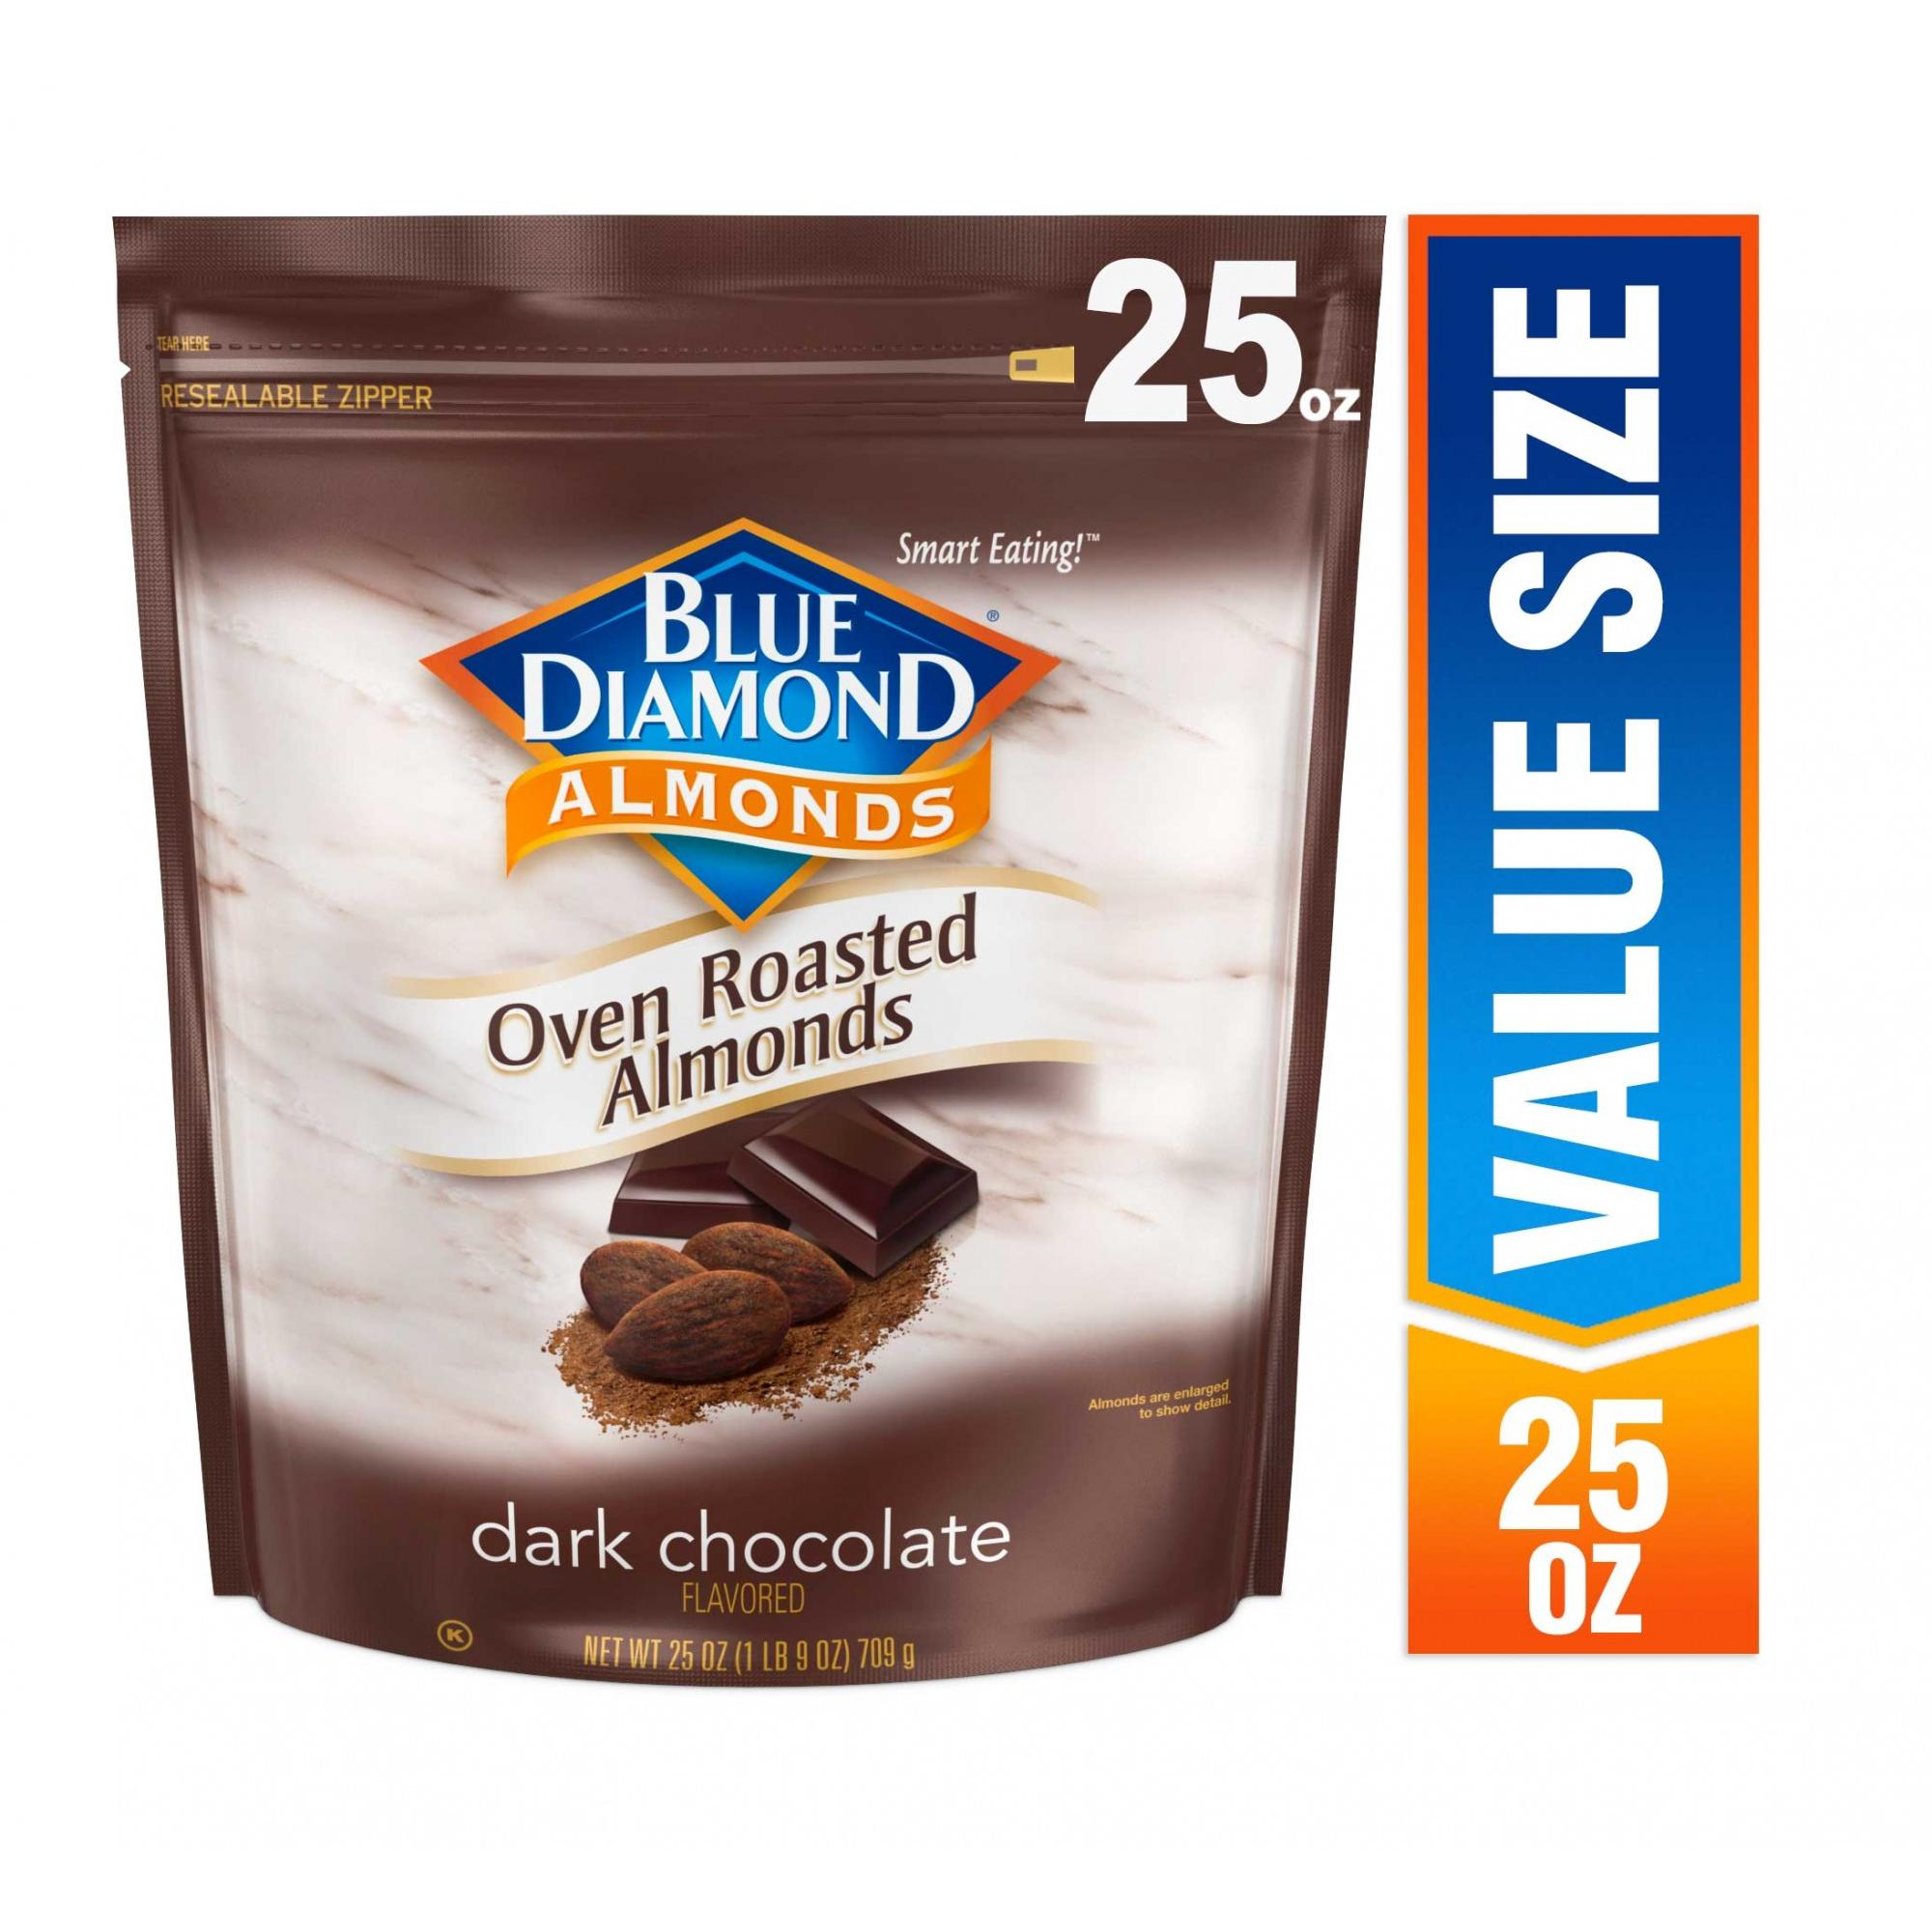 Dark chocolate cravings